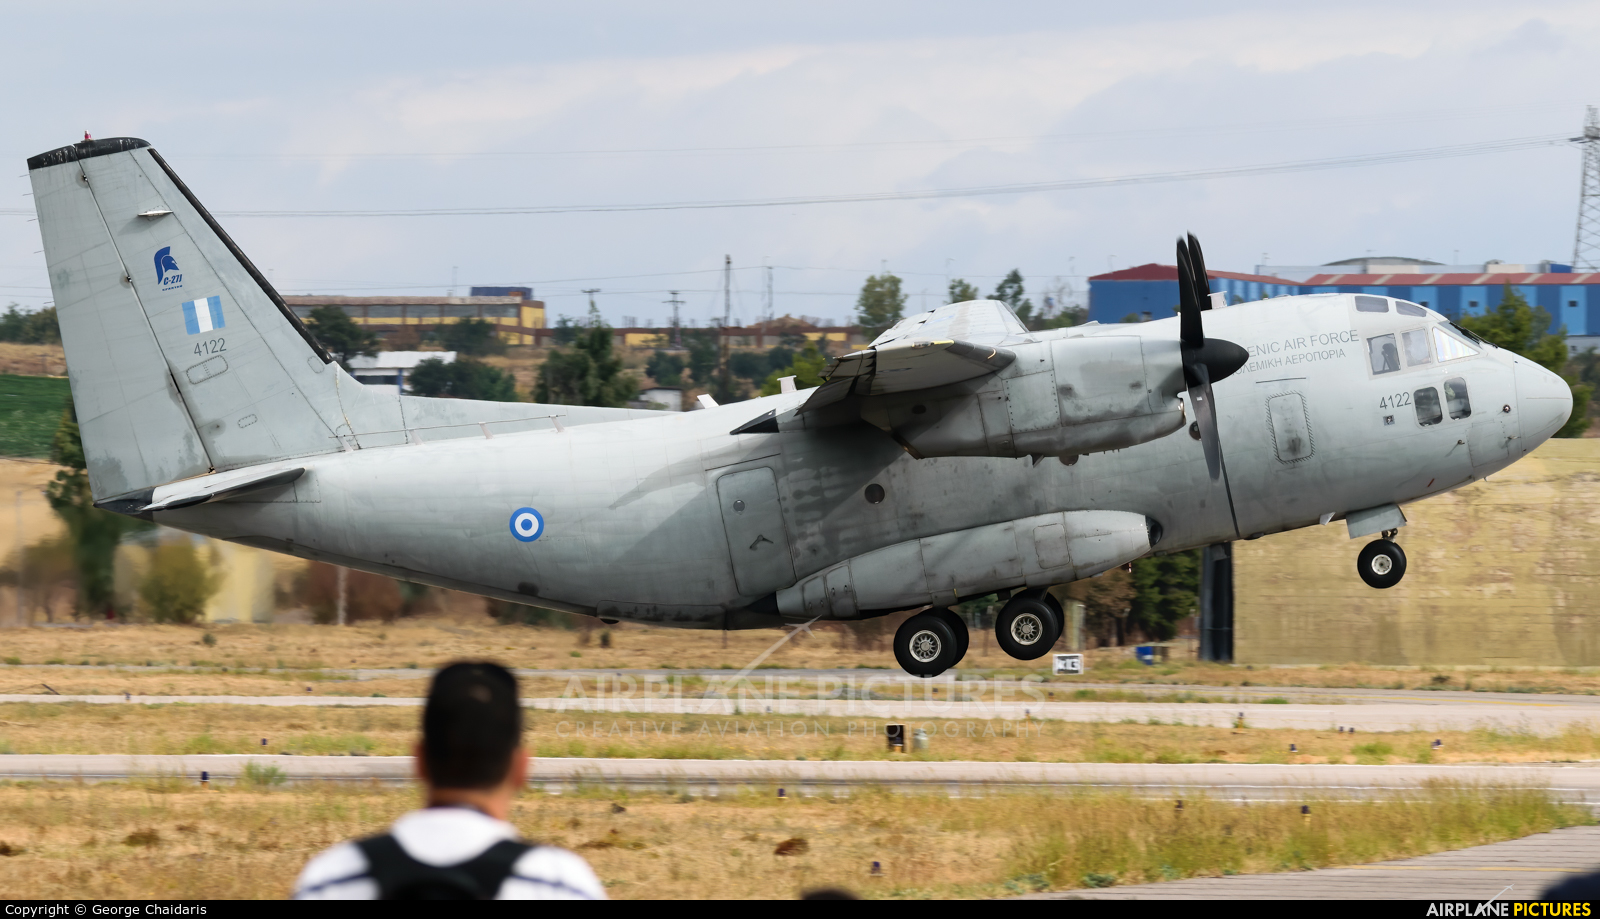 Greece - Hellenic Air Force 4122 aircraft at Tanagra